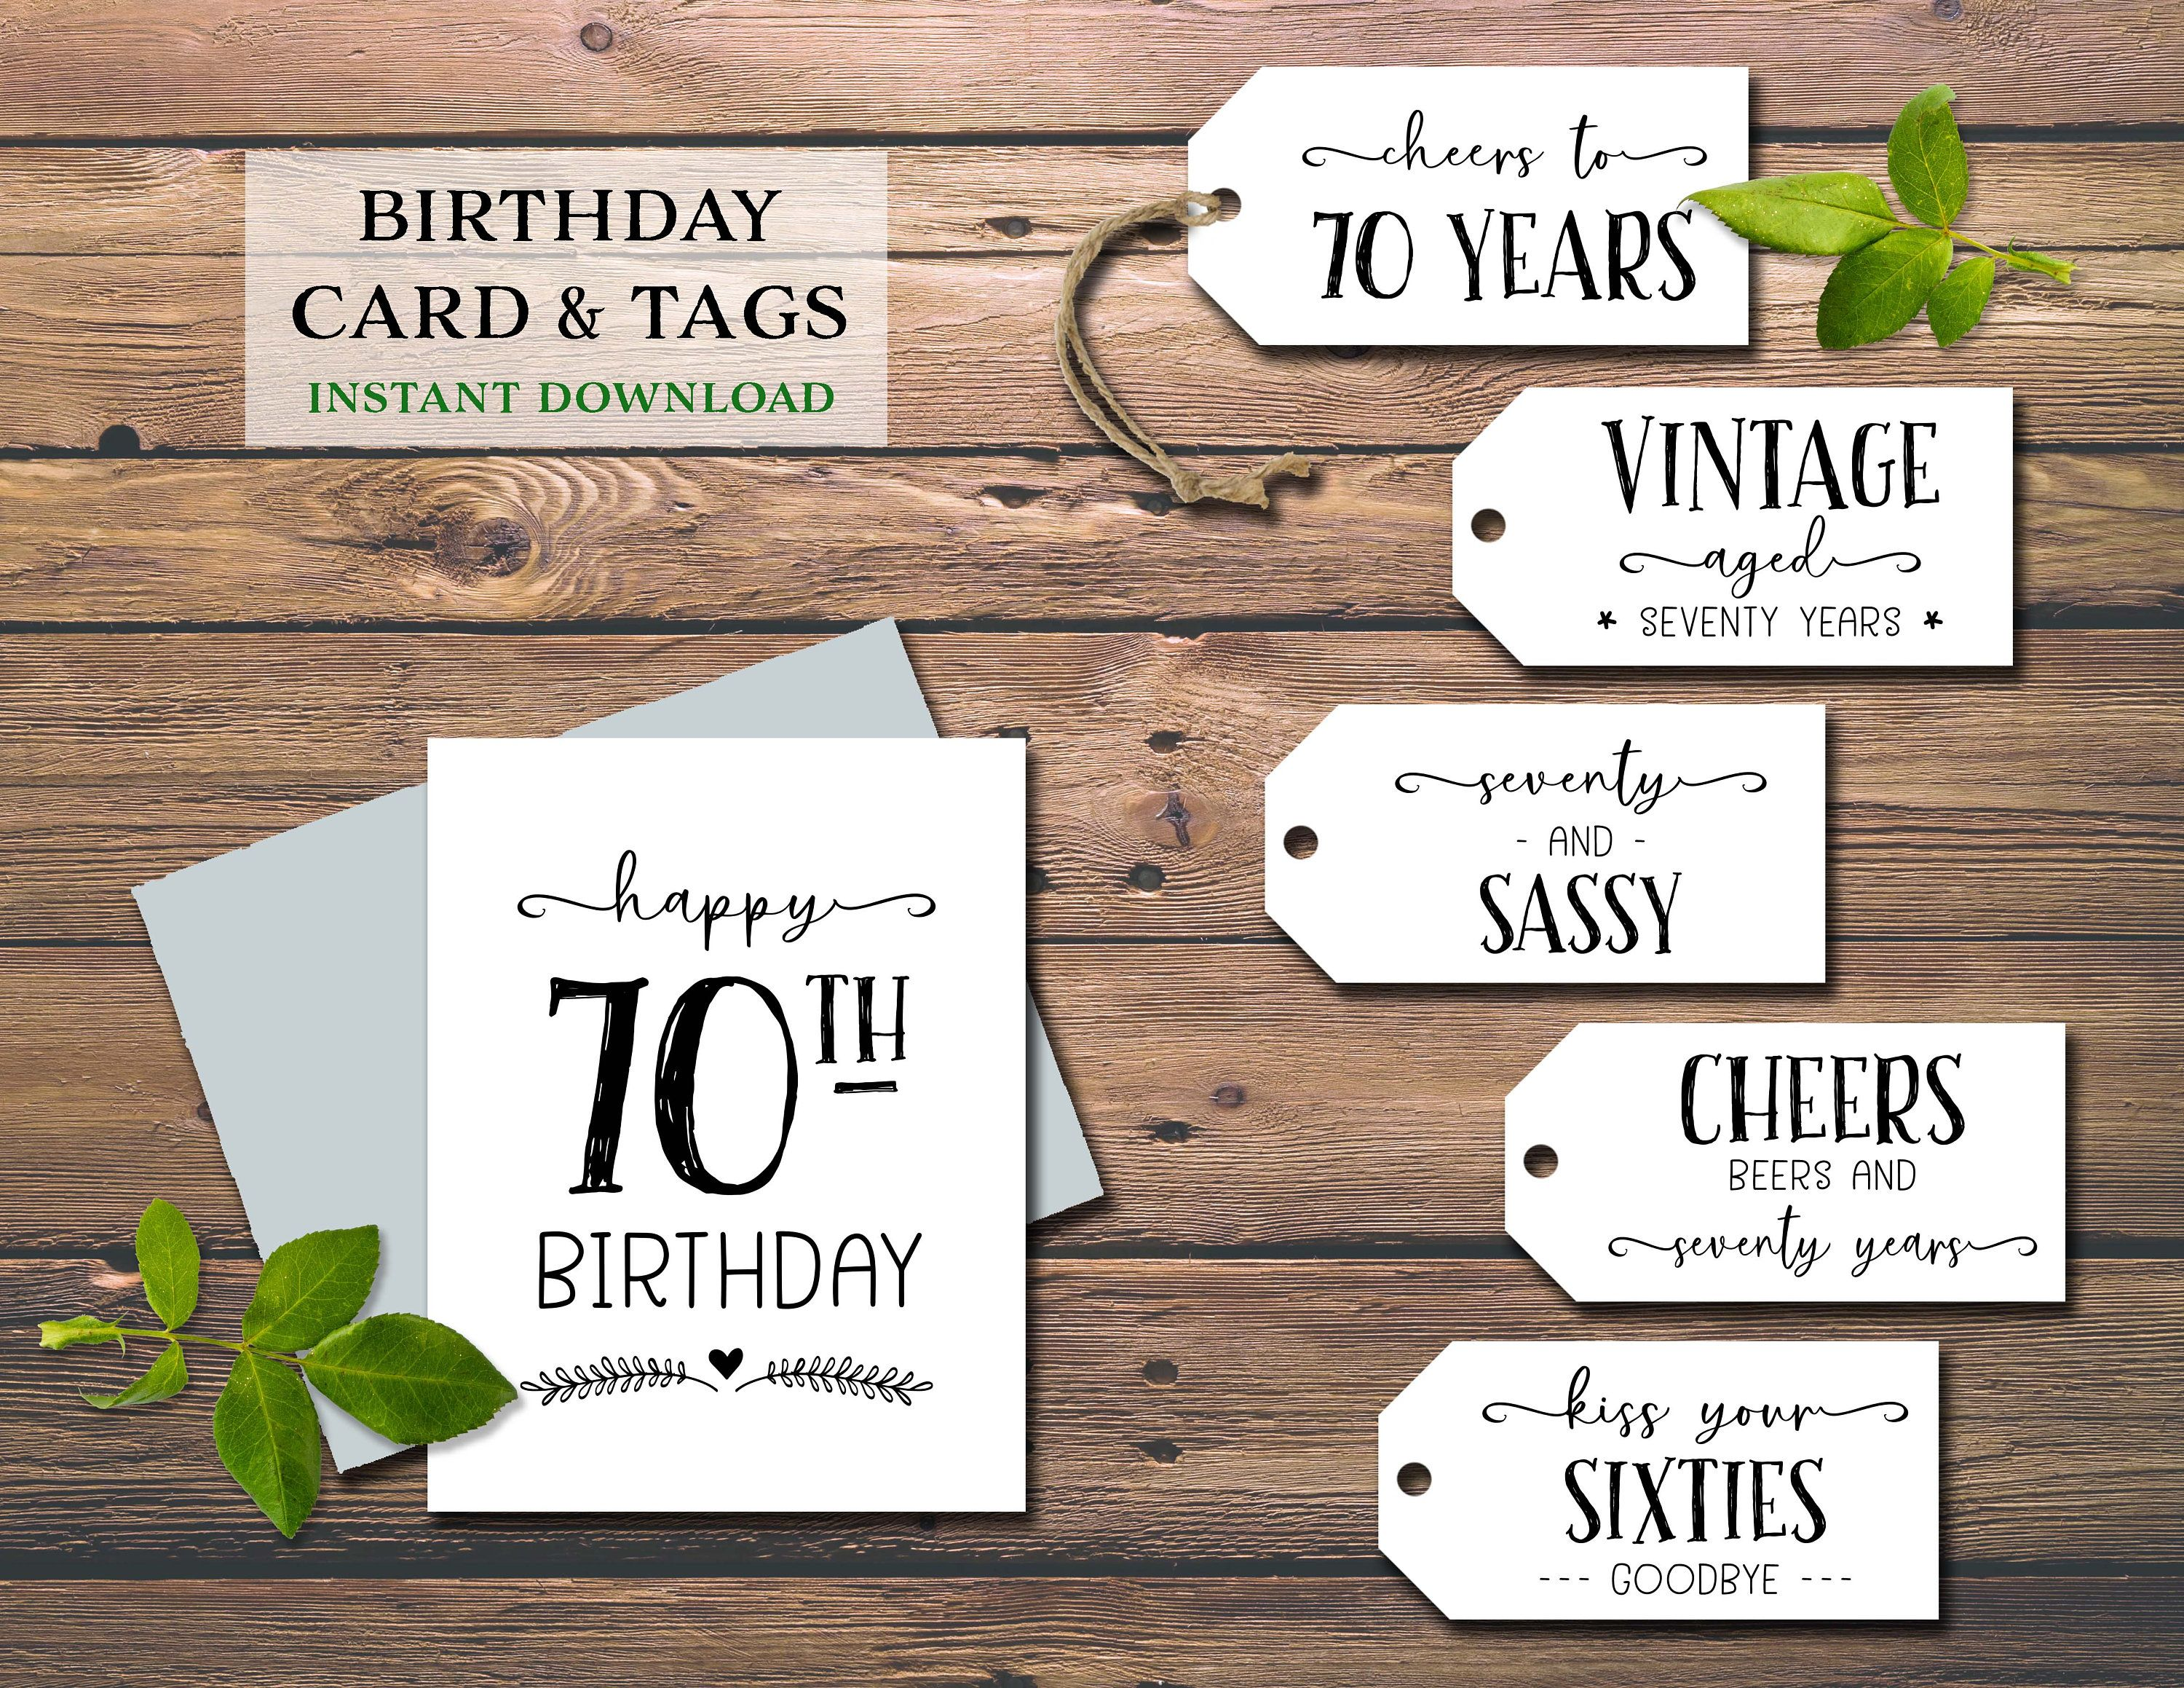 70th birthday card gift tags instant download printable